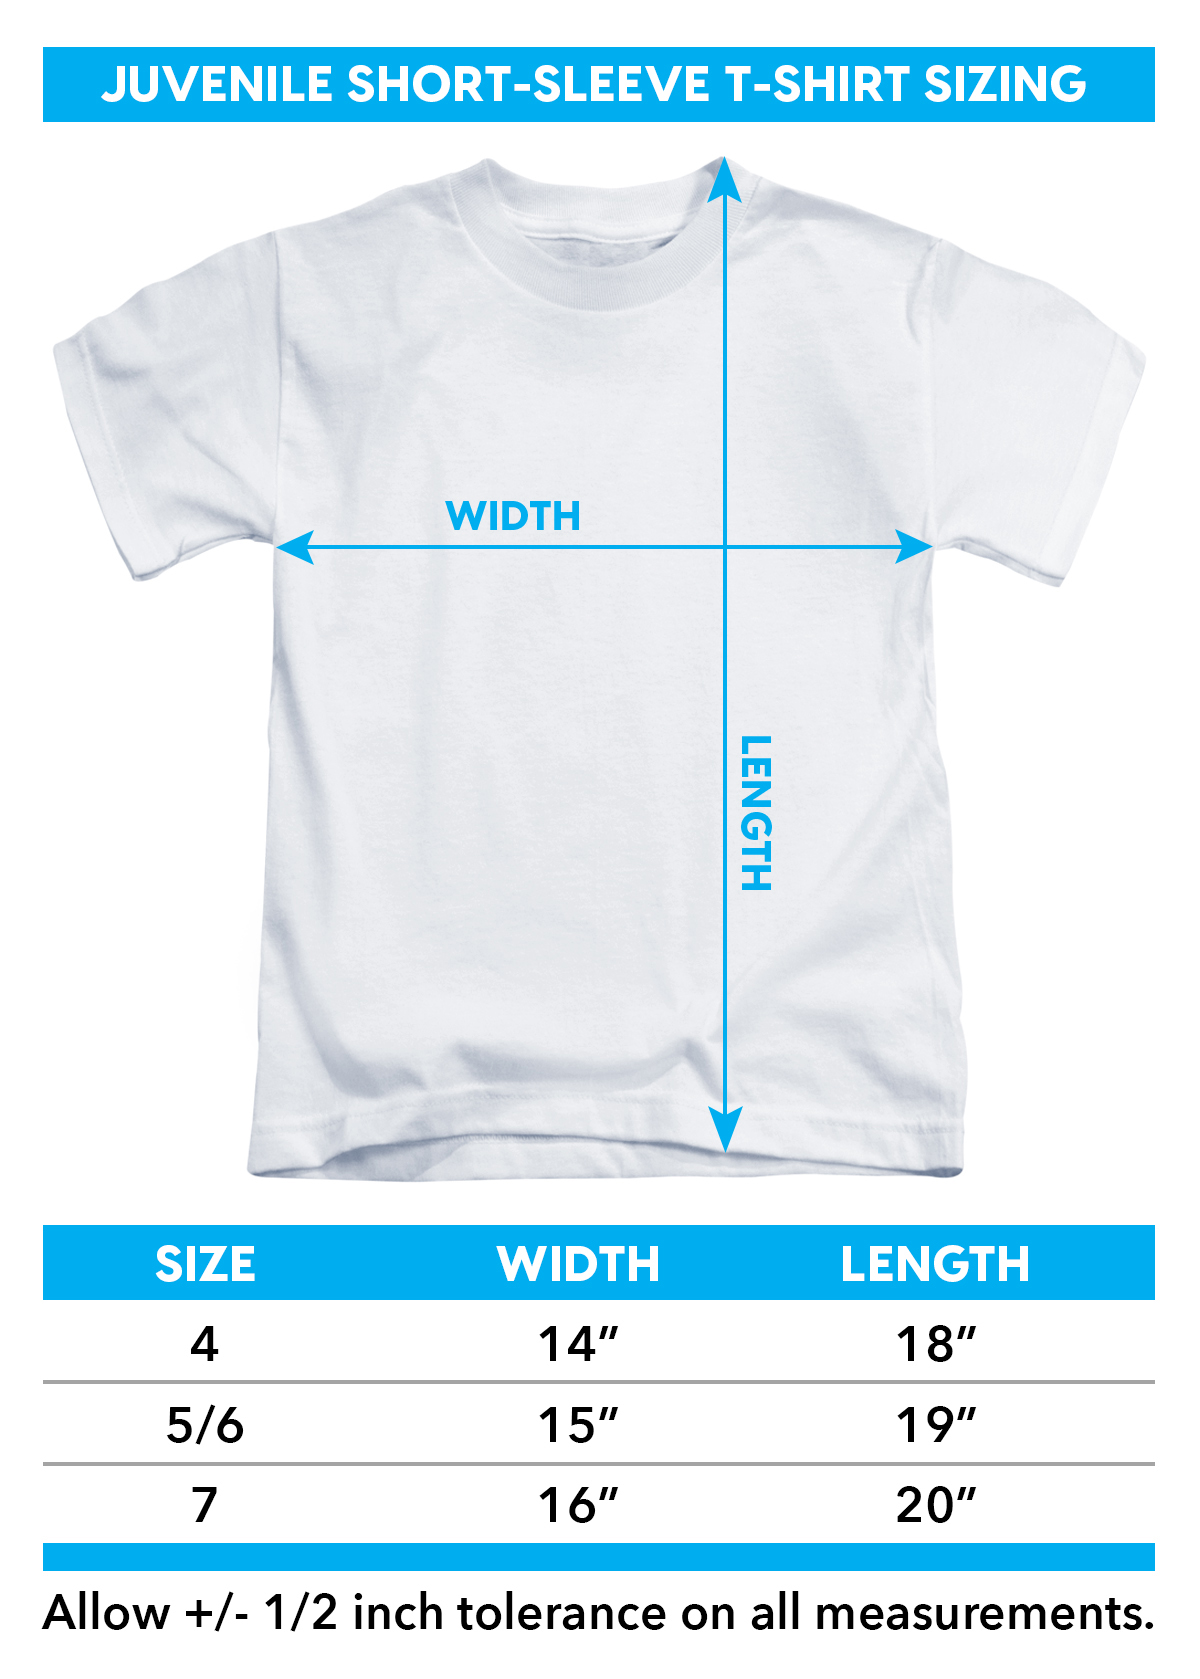 Sizing chart in inches for Martian Manhunter Kid's T-Shirt TRV-DCO178-KT